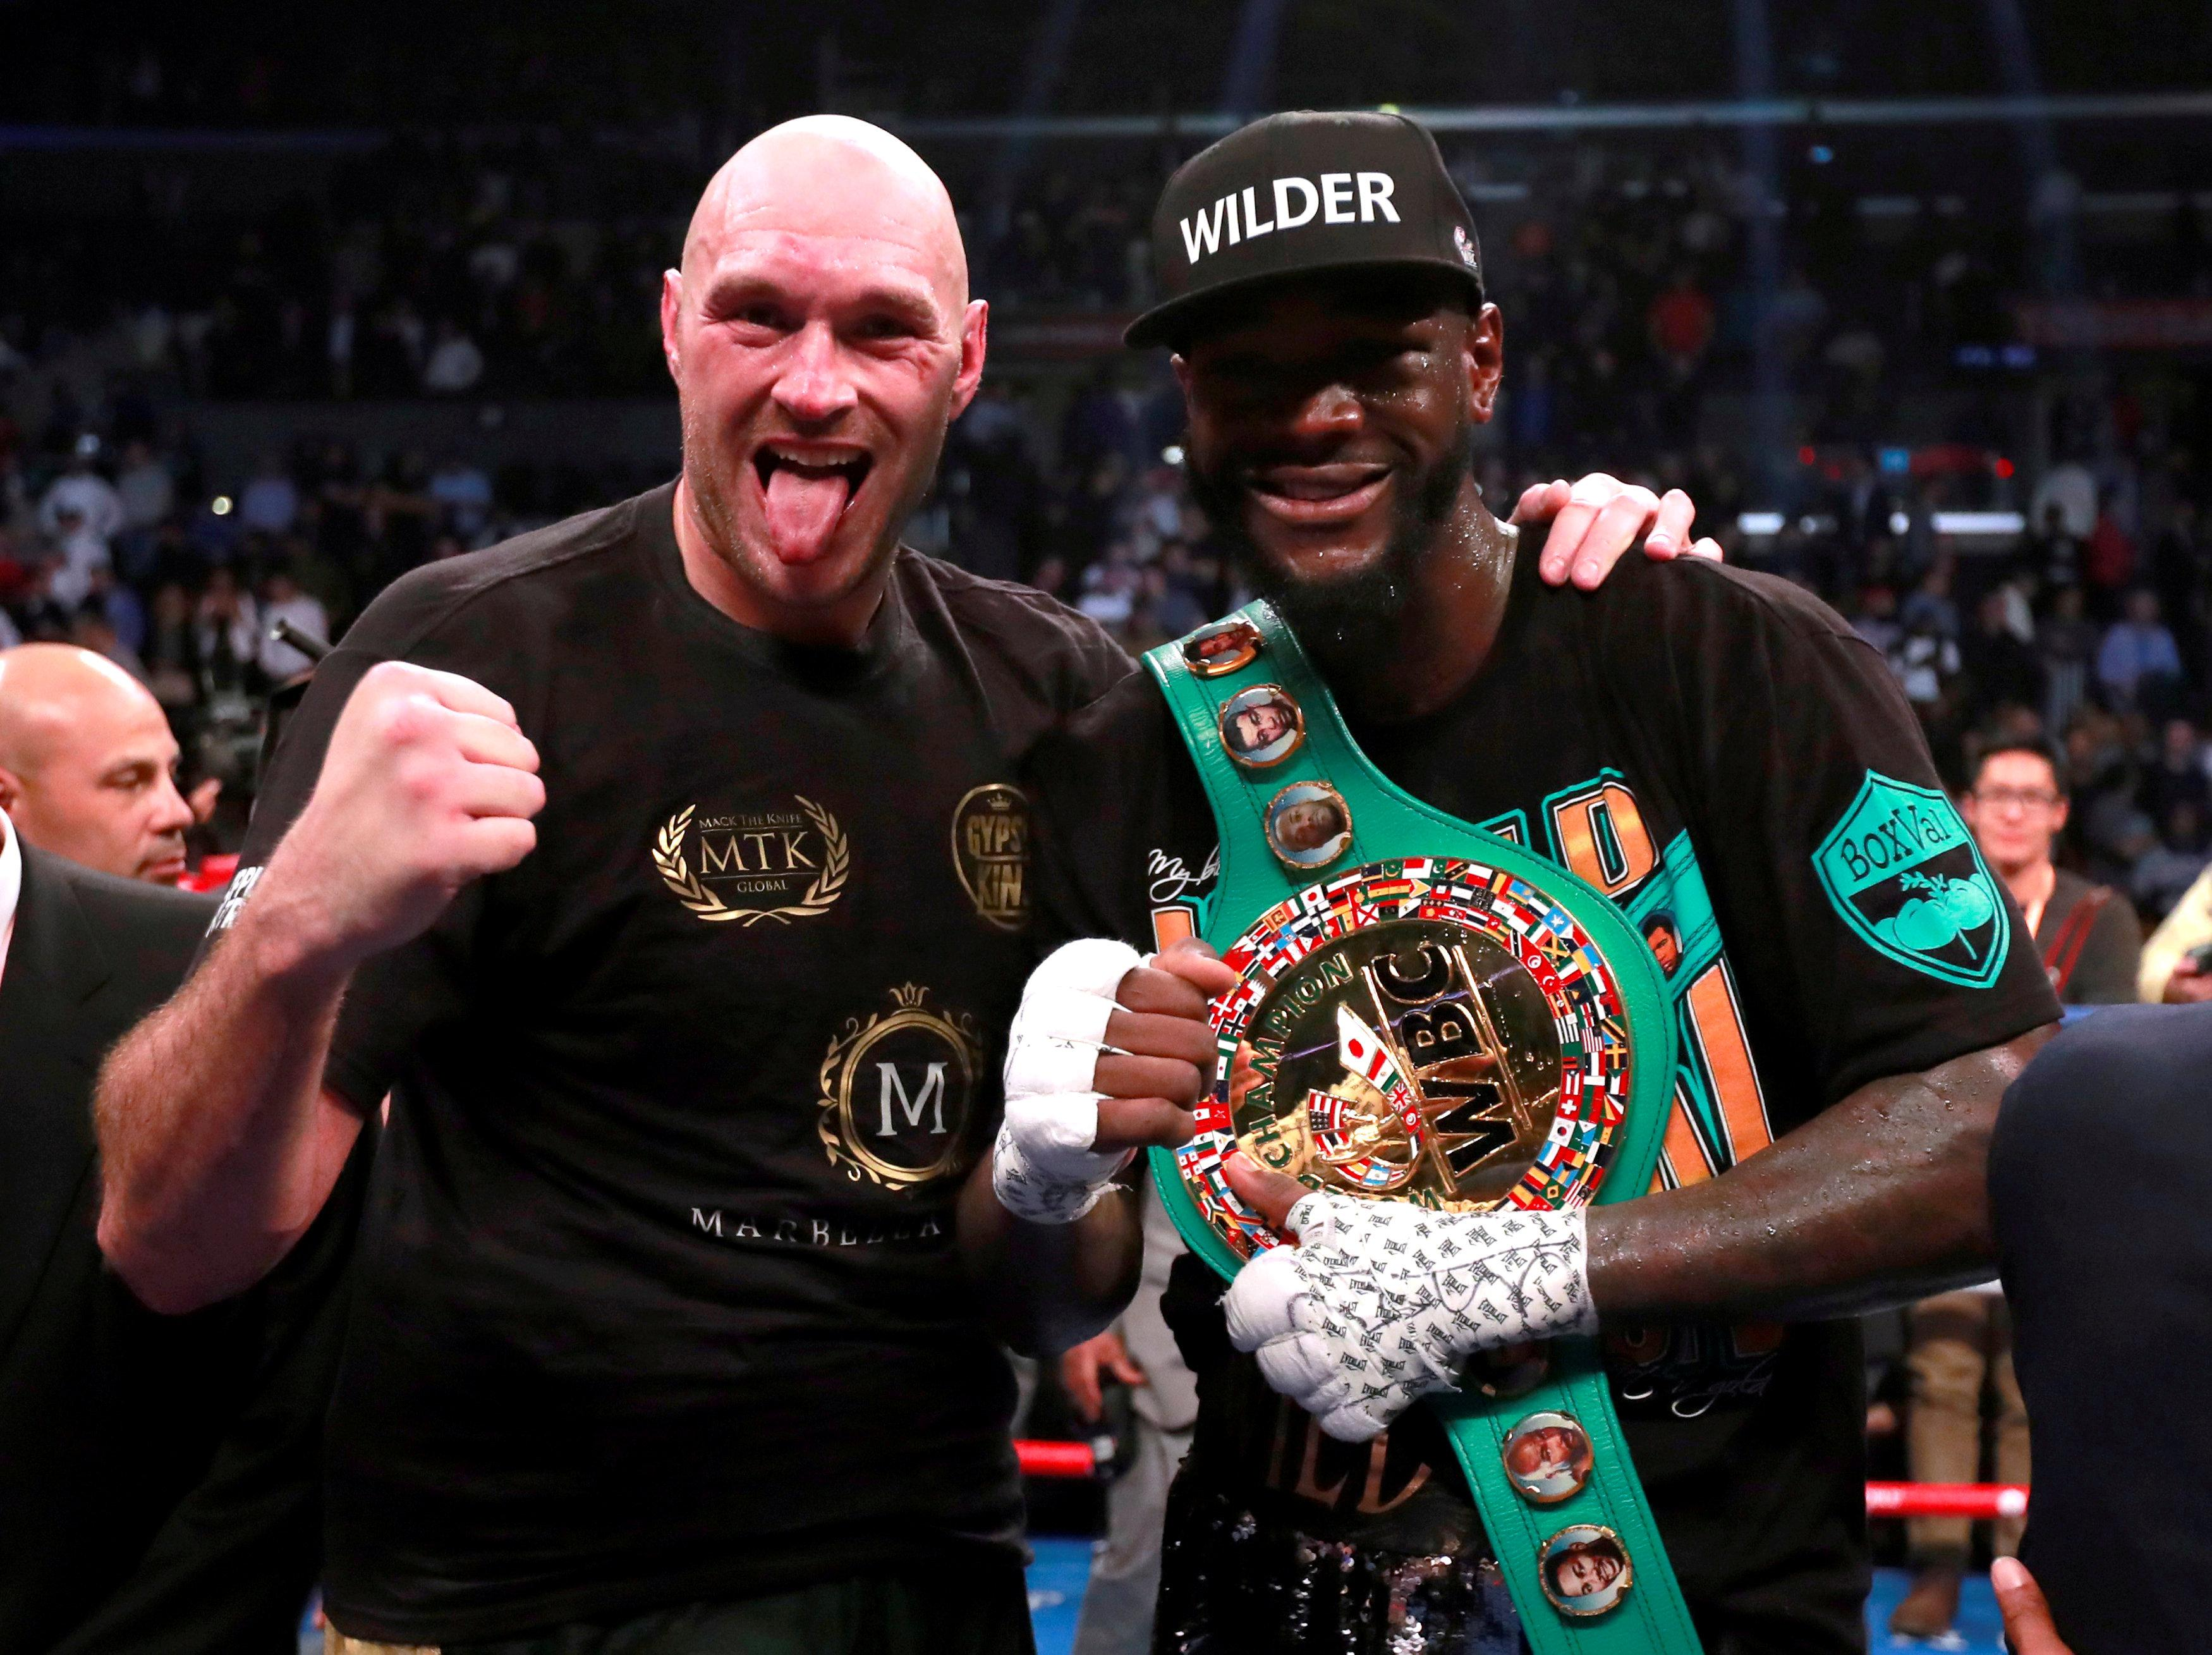 A deal with Deontay Wilder looks impossible at present while Tyson Fury rejected the latest offer from Eddie Hearn